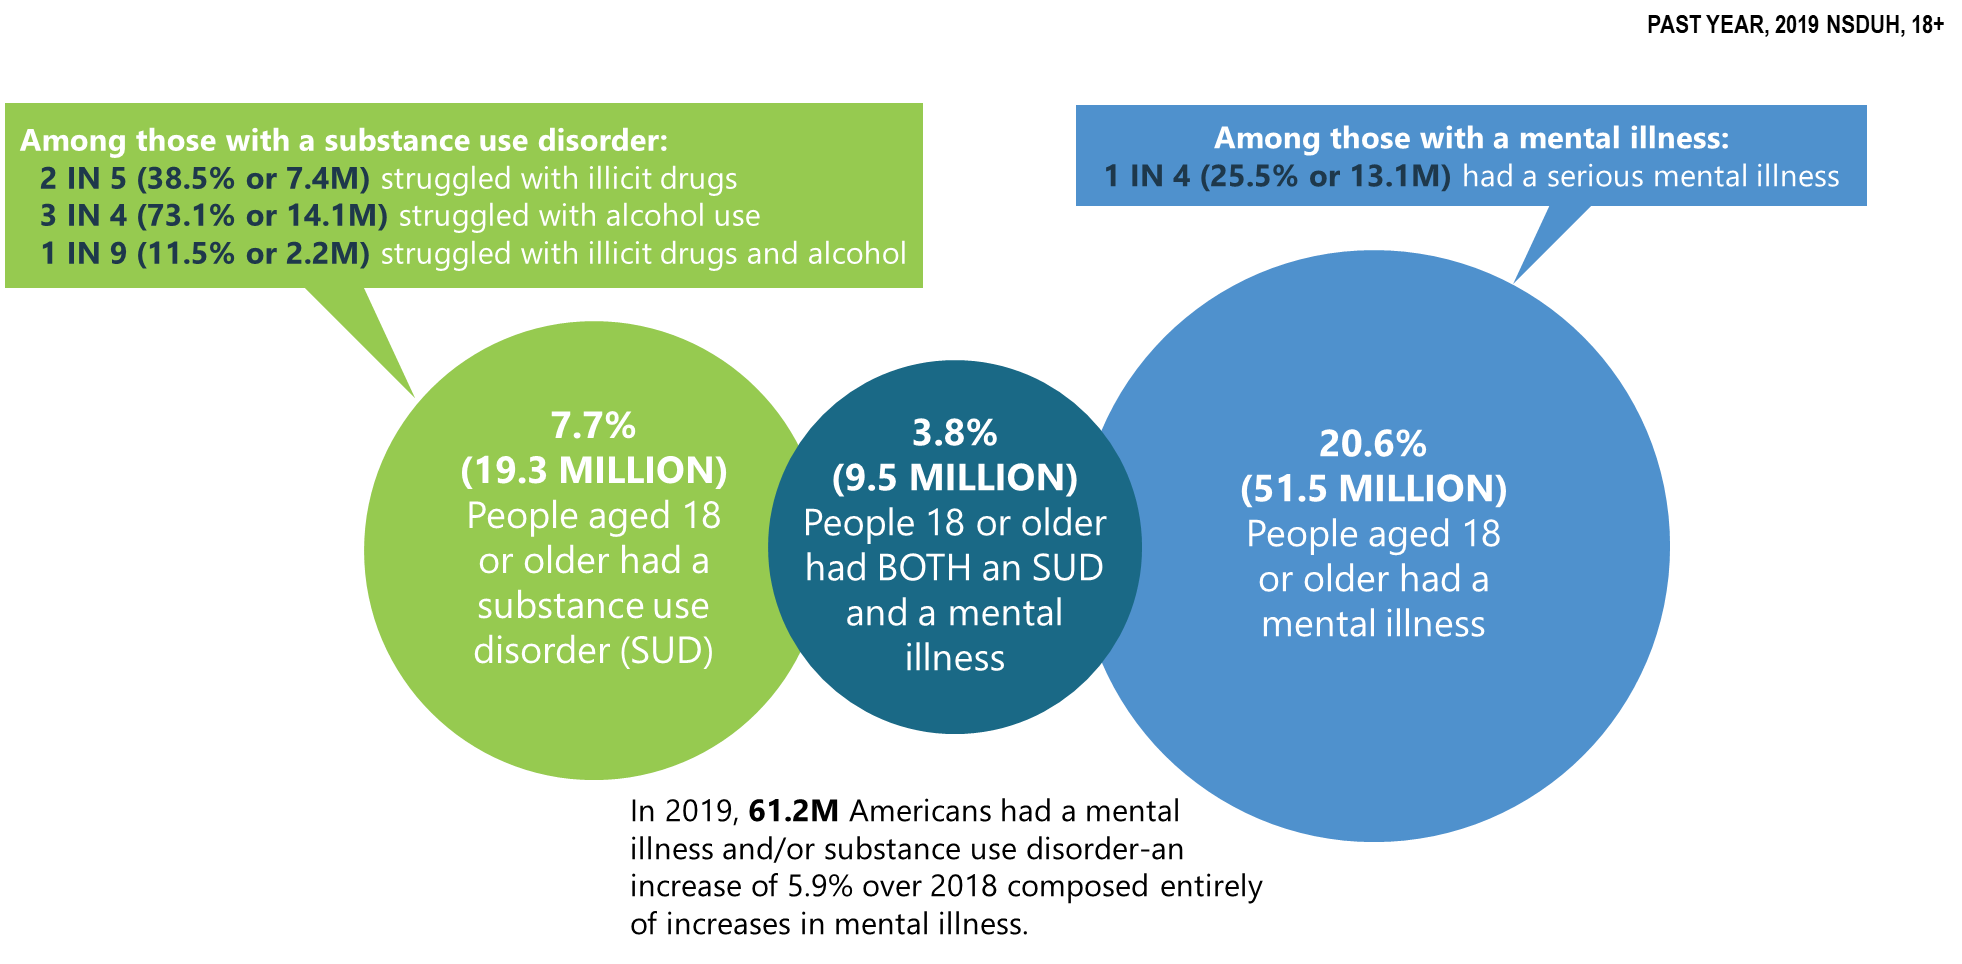 opioid misuse in the United States in 2019 compared to 2018